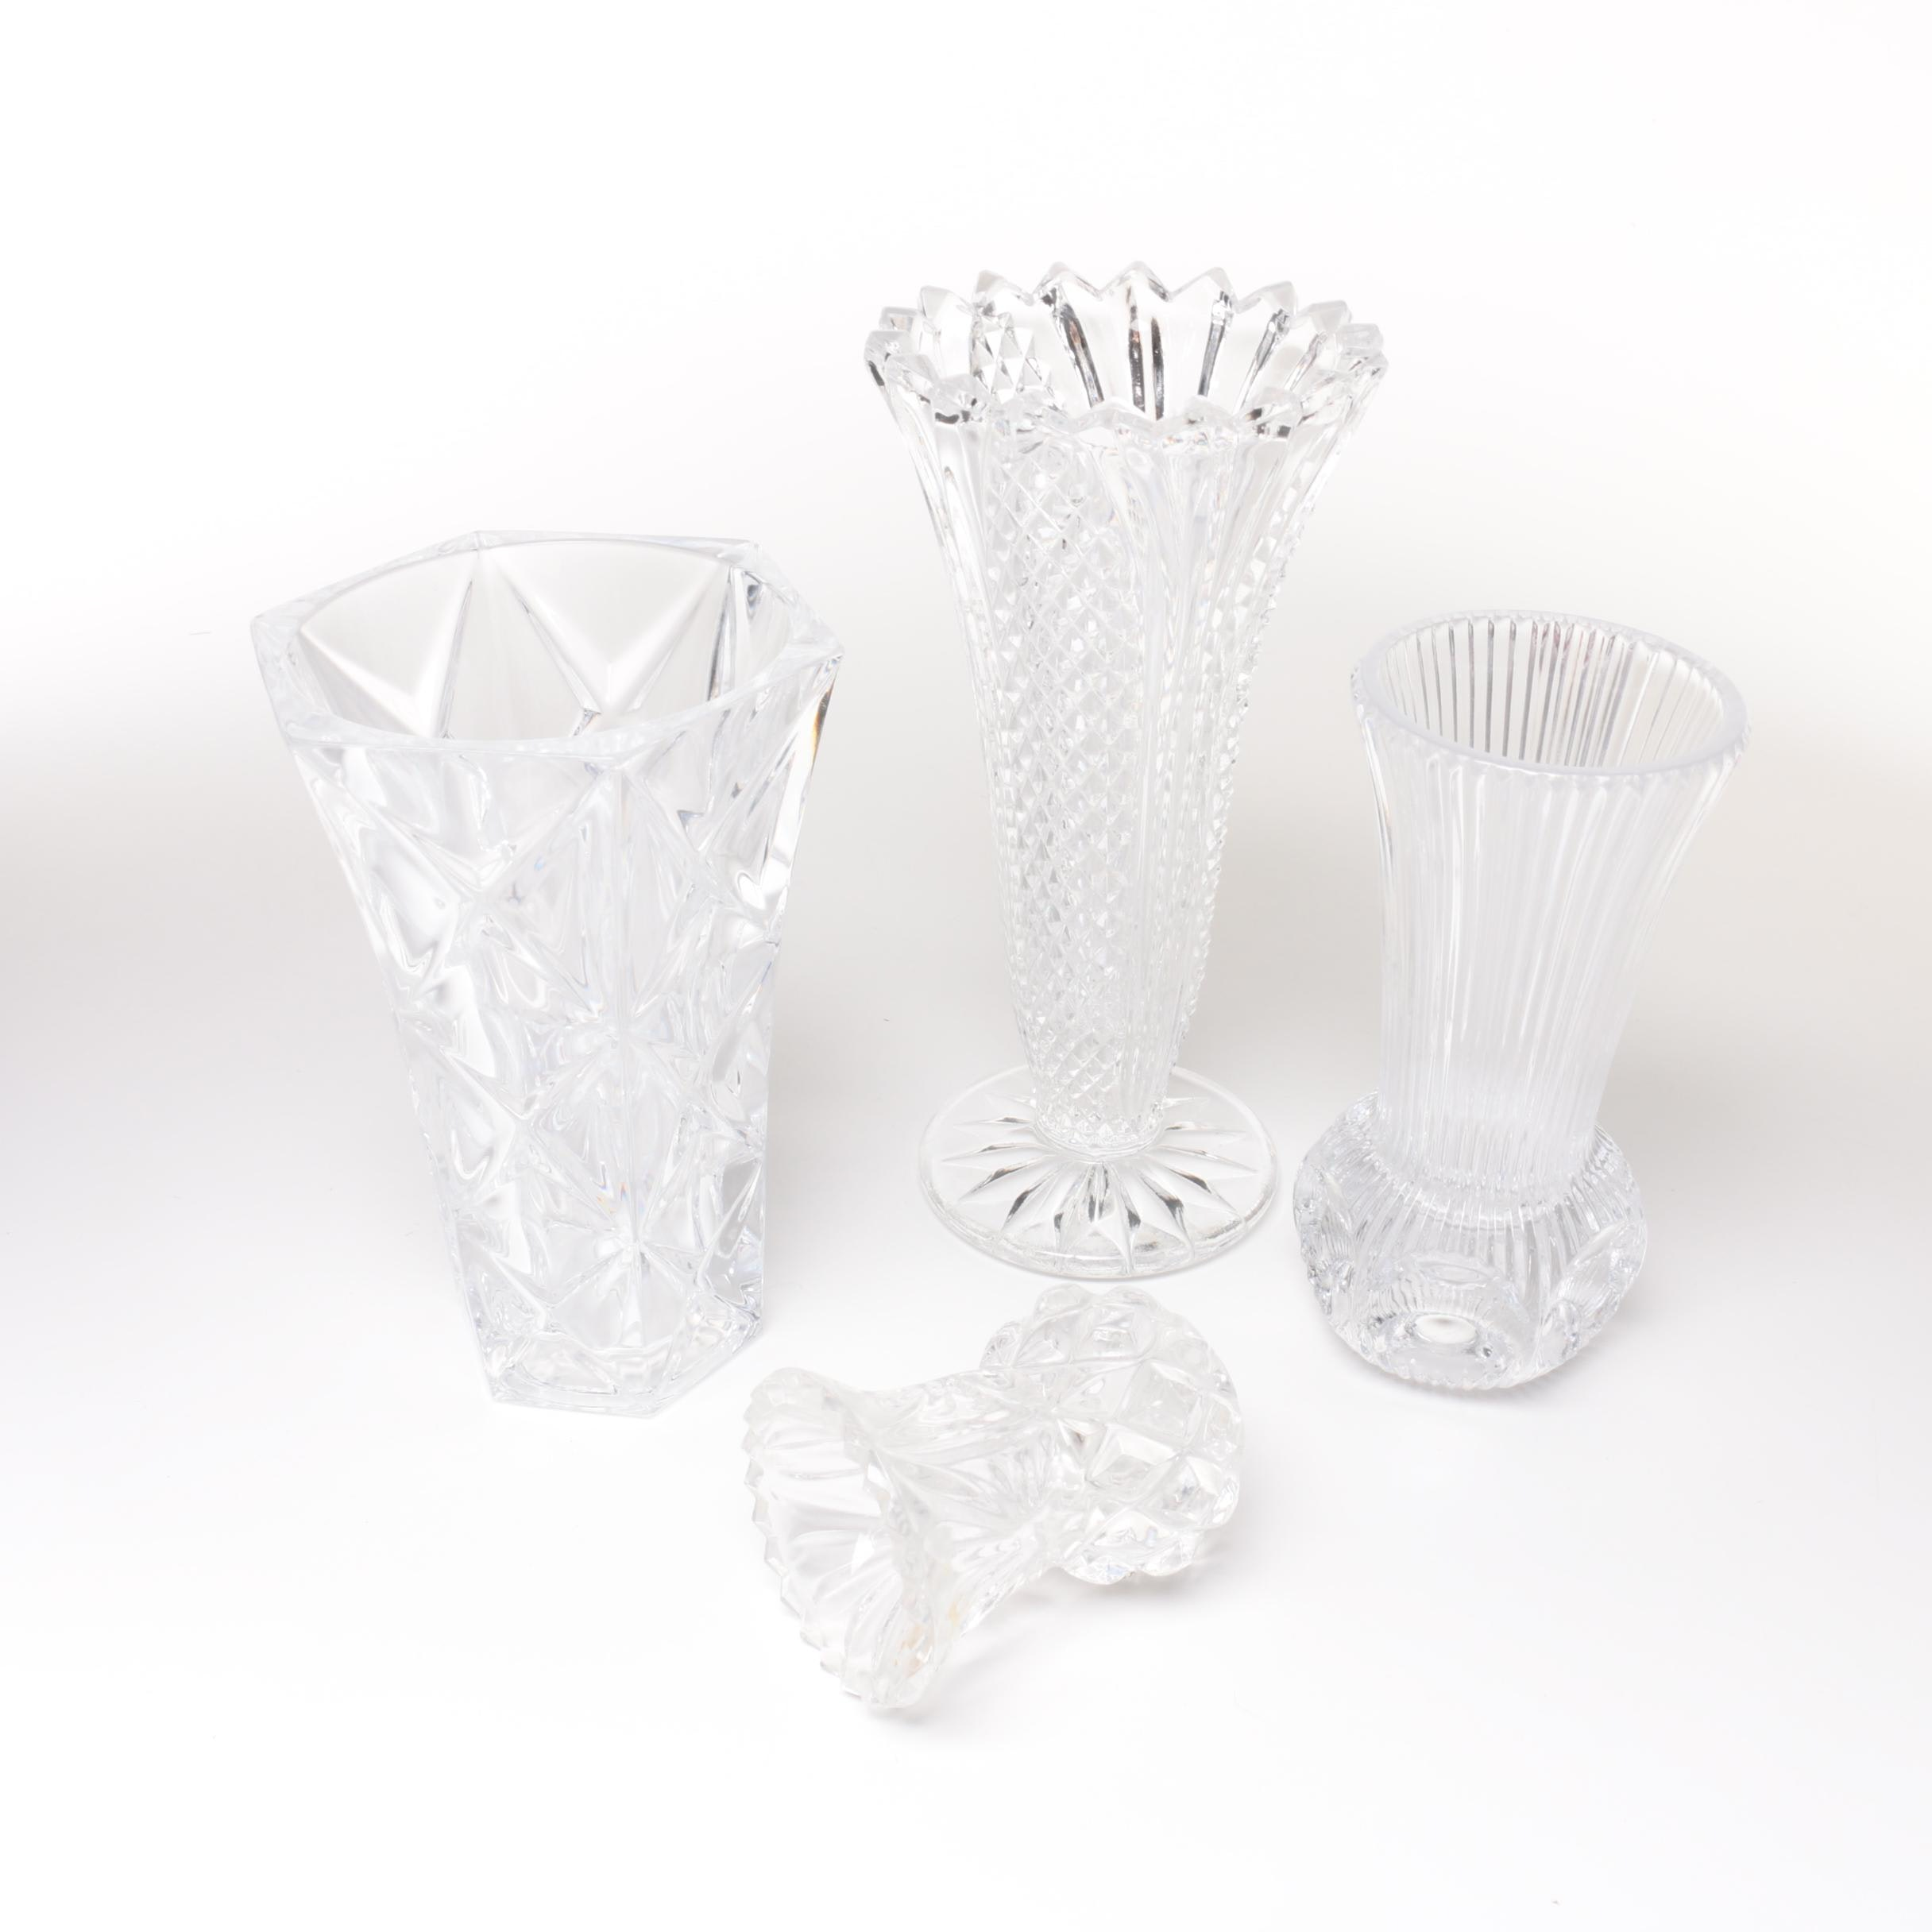 Group of Pressed Glass and Lead Crystal Vases